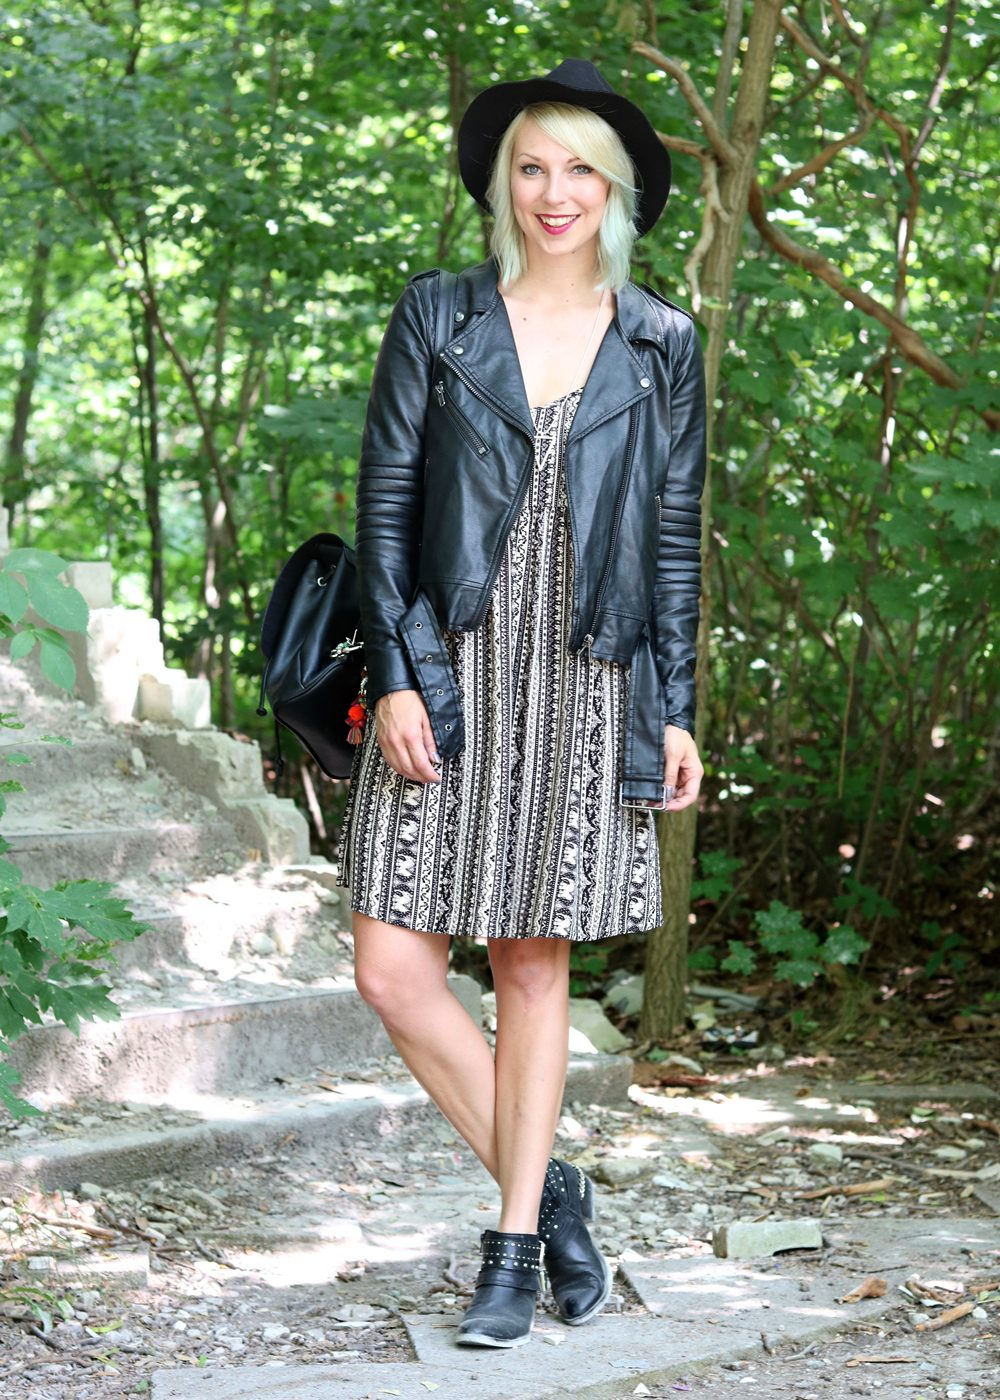 Fashinblogger Outfit Lost Places Berlin Lederjacke Ethnokleid Bikerboots Hut (13)